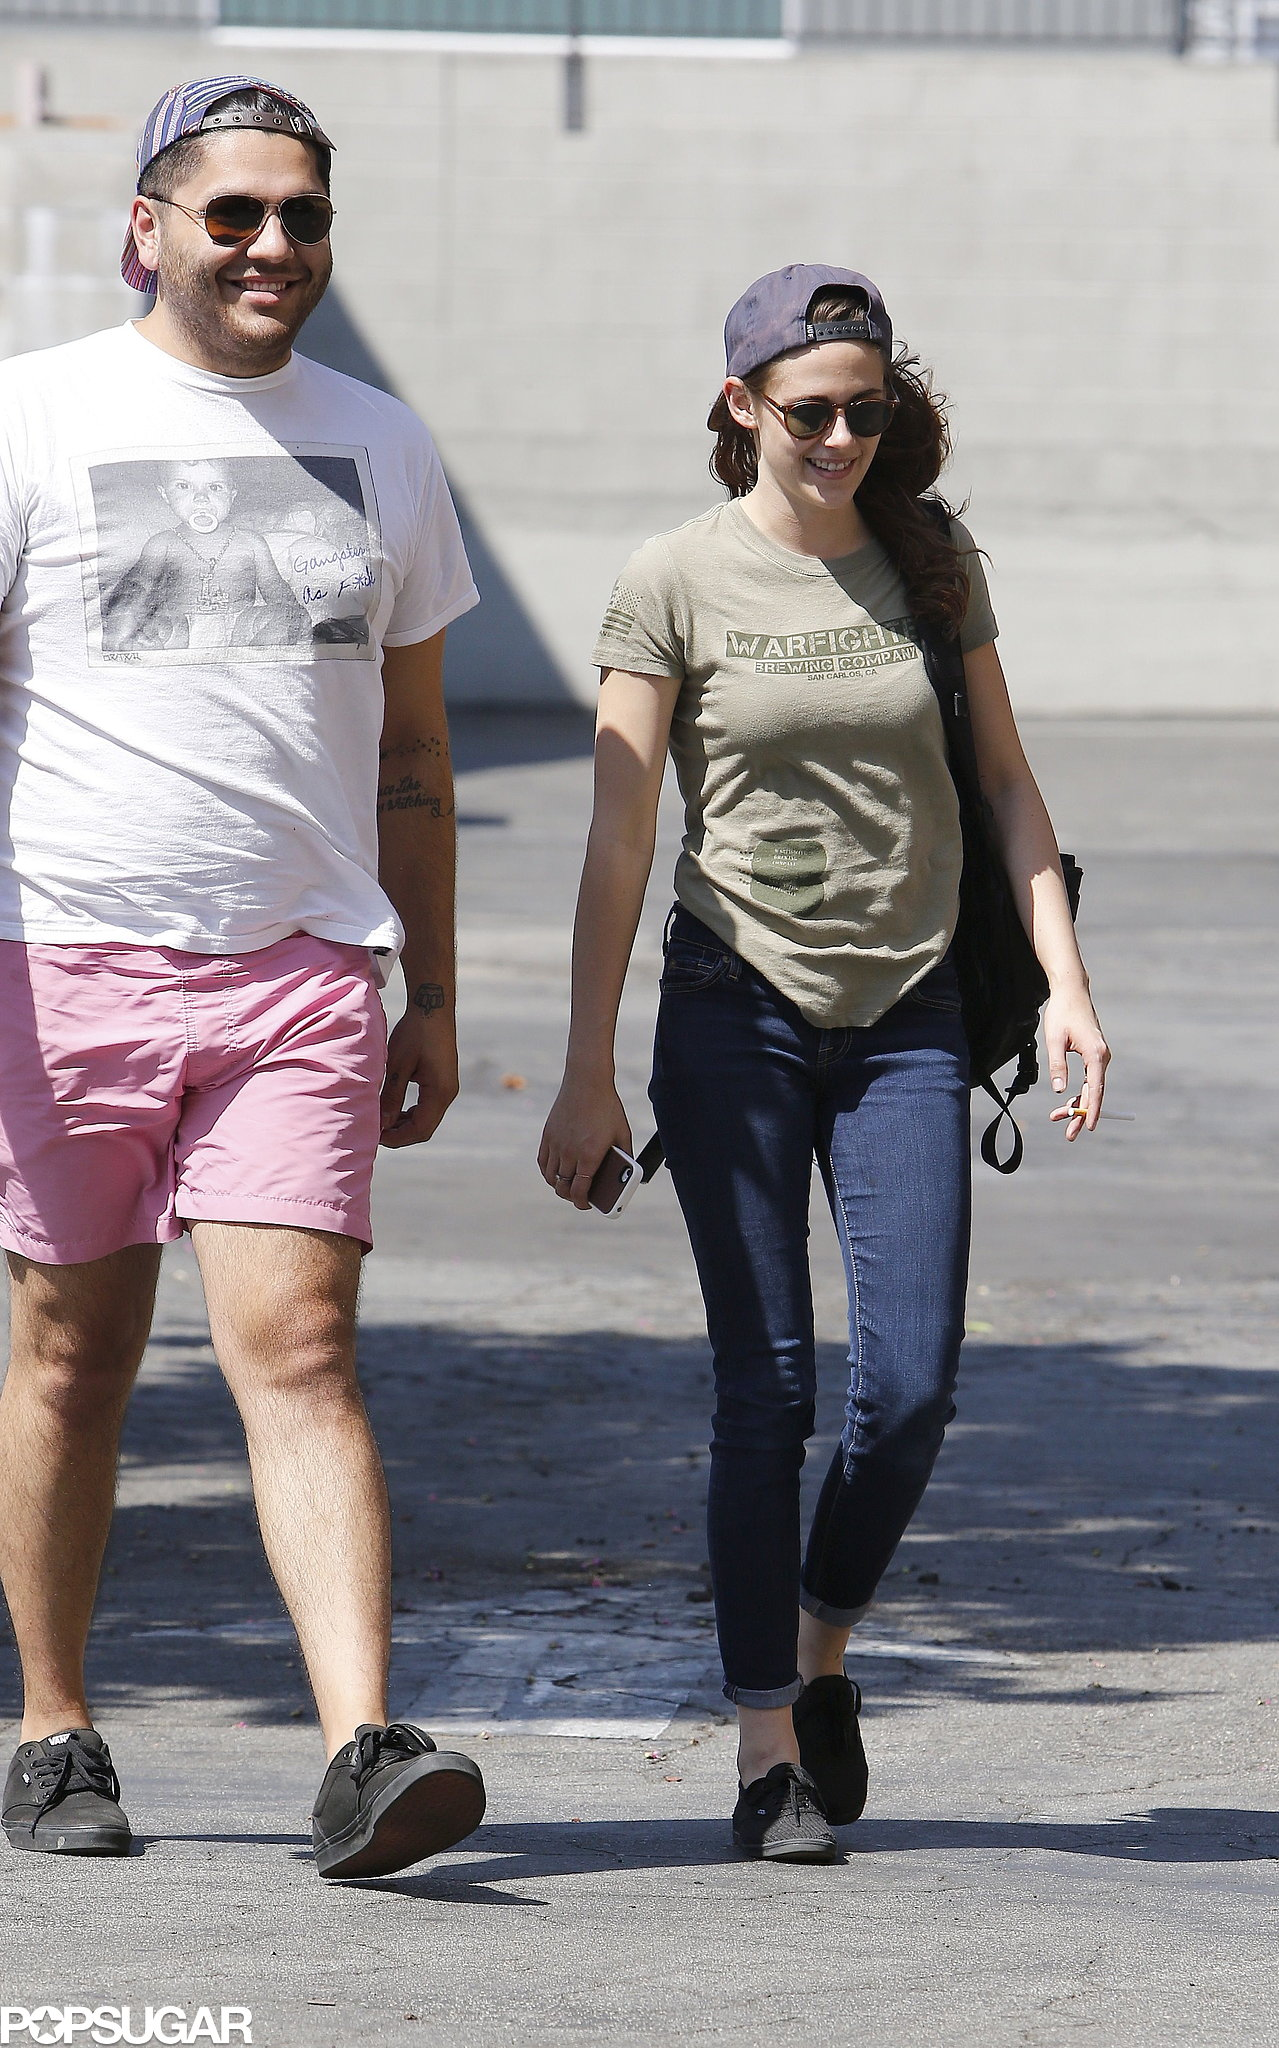 Kristen Stewart Flashes a Smile and Shows Her Support For Veterans